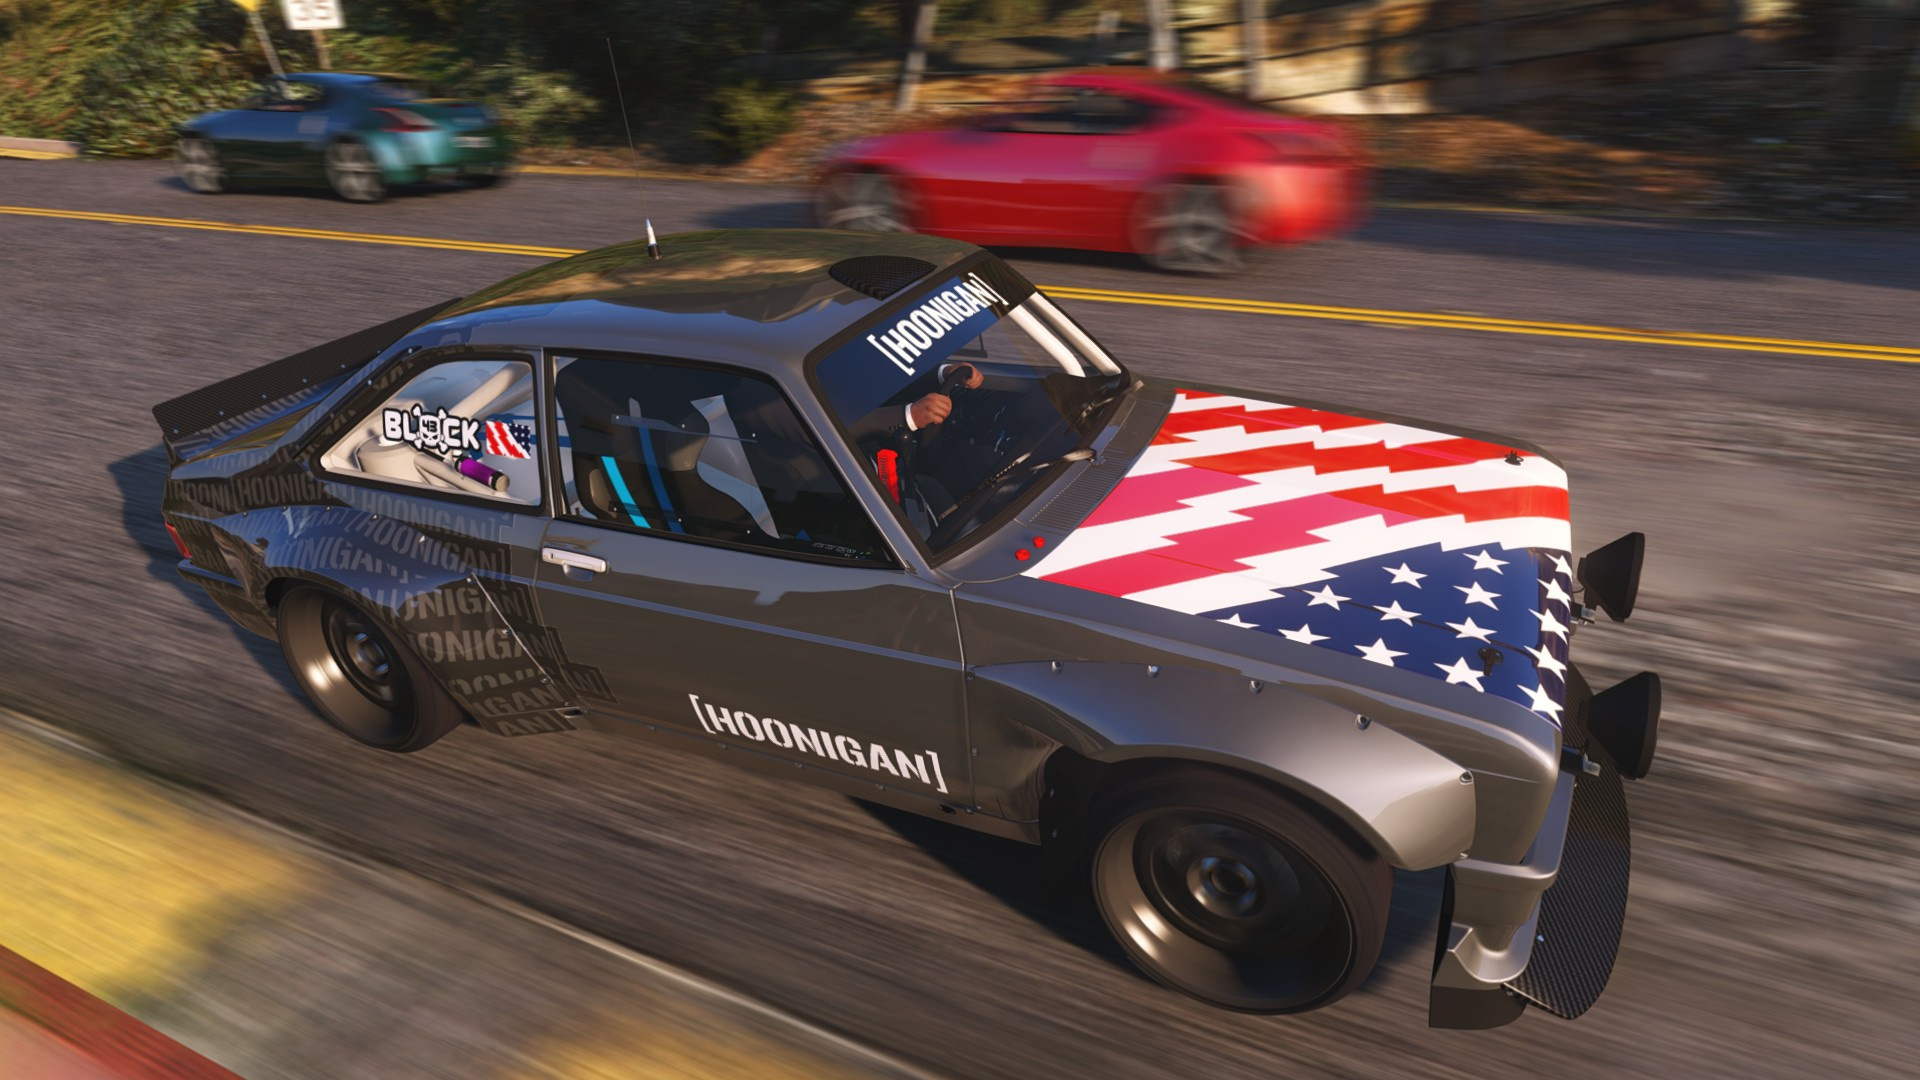 Hoonigan Escort >> 1978 Hoonigan Ford Escort Mk2 RS [ADD-ON / TUNING / TEMPLATE] - GTA5-Mods.com